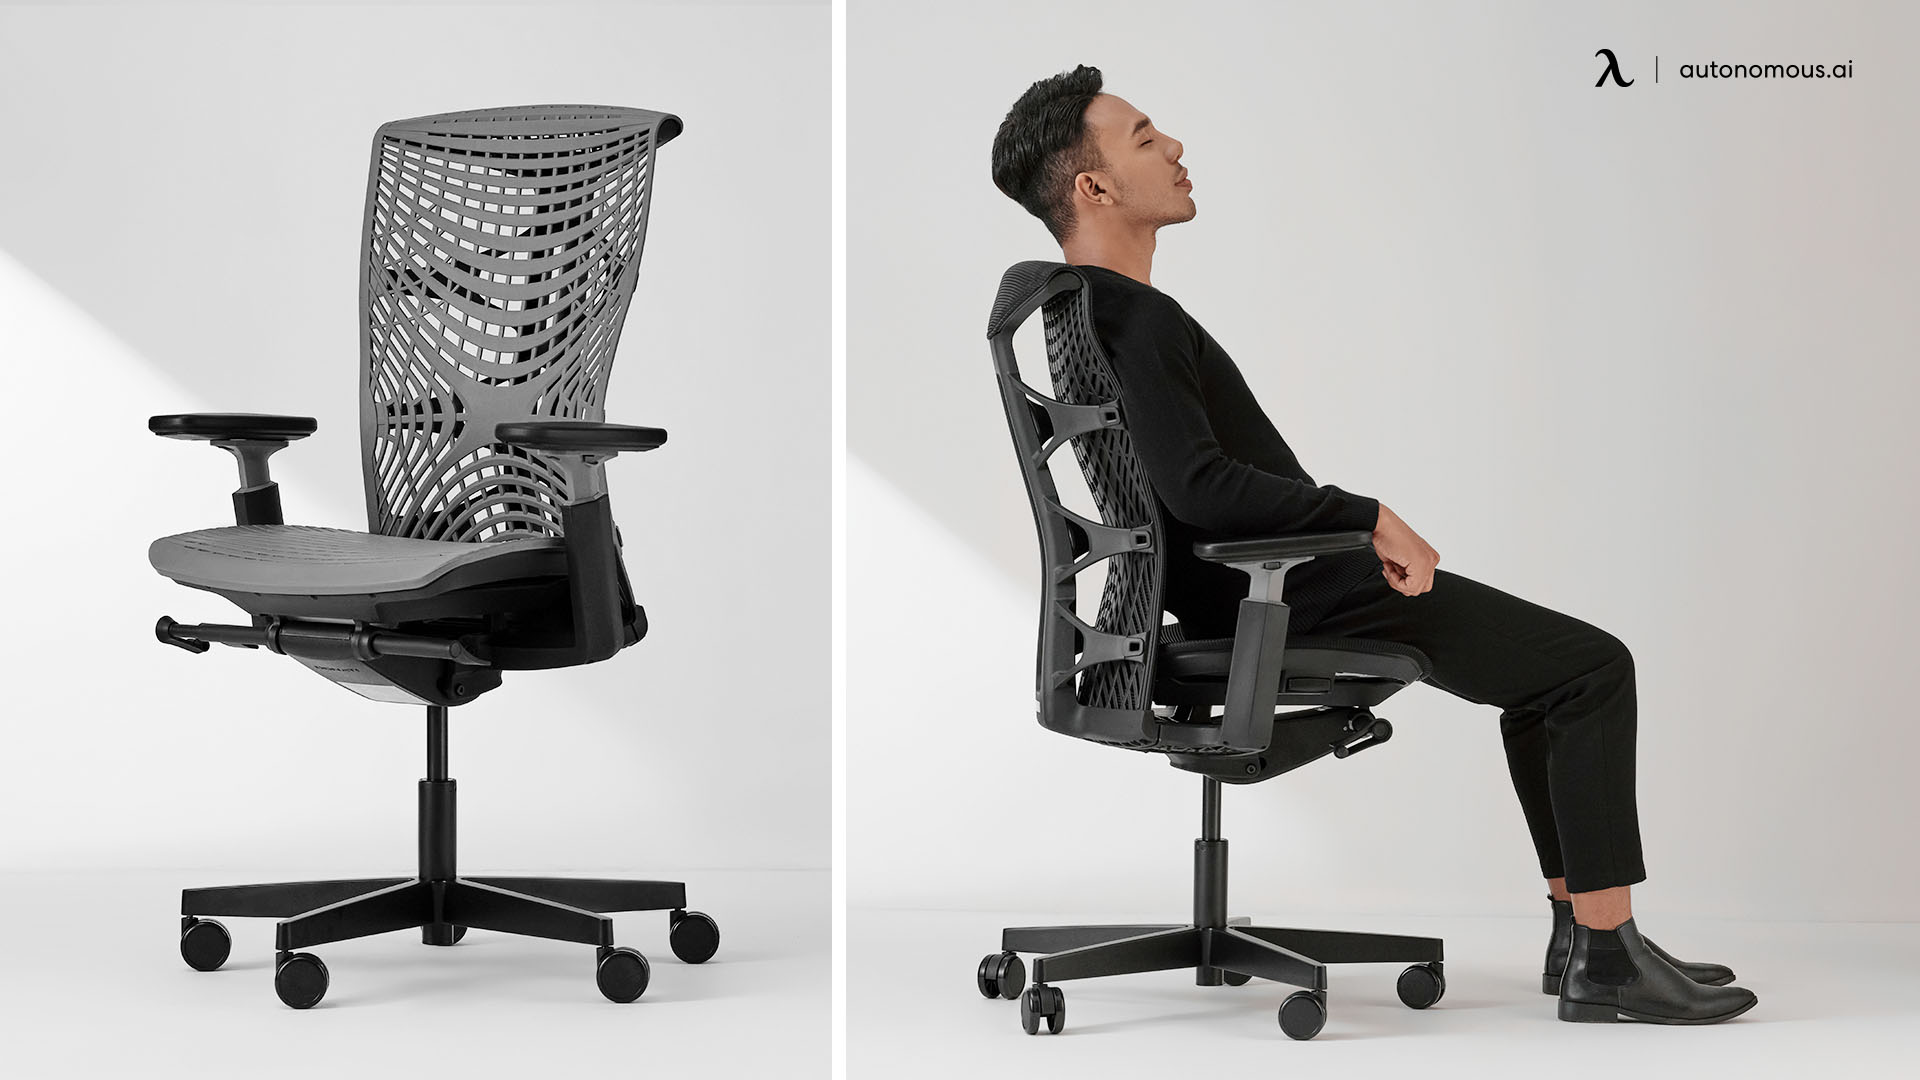 How long do you spend Sitting?